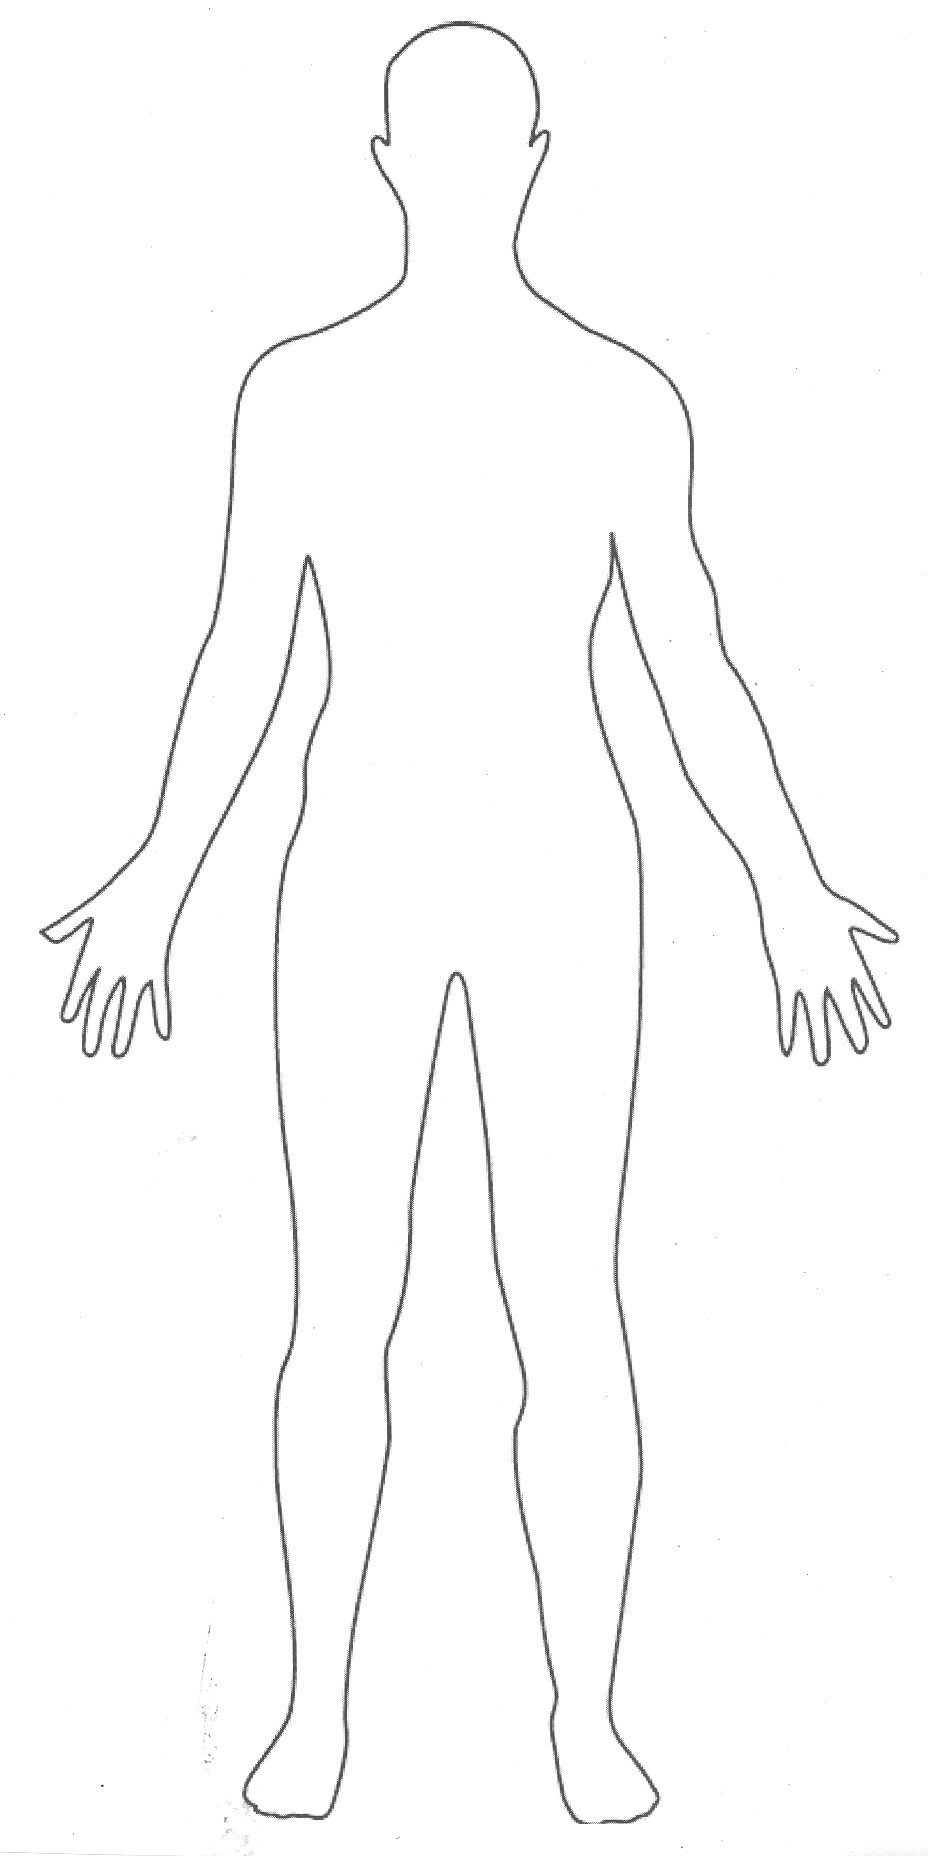 928x1856 Human Body Drawing Outline The Anatomy And Physiology Of The Human